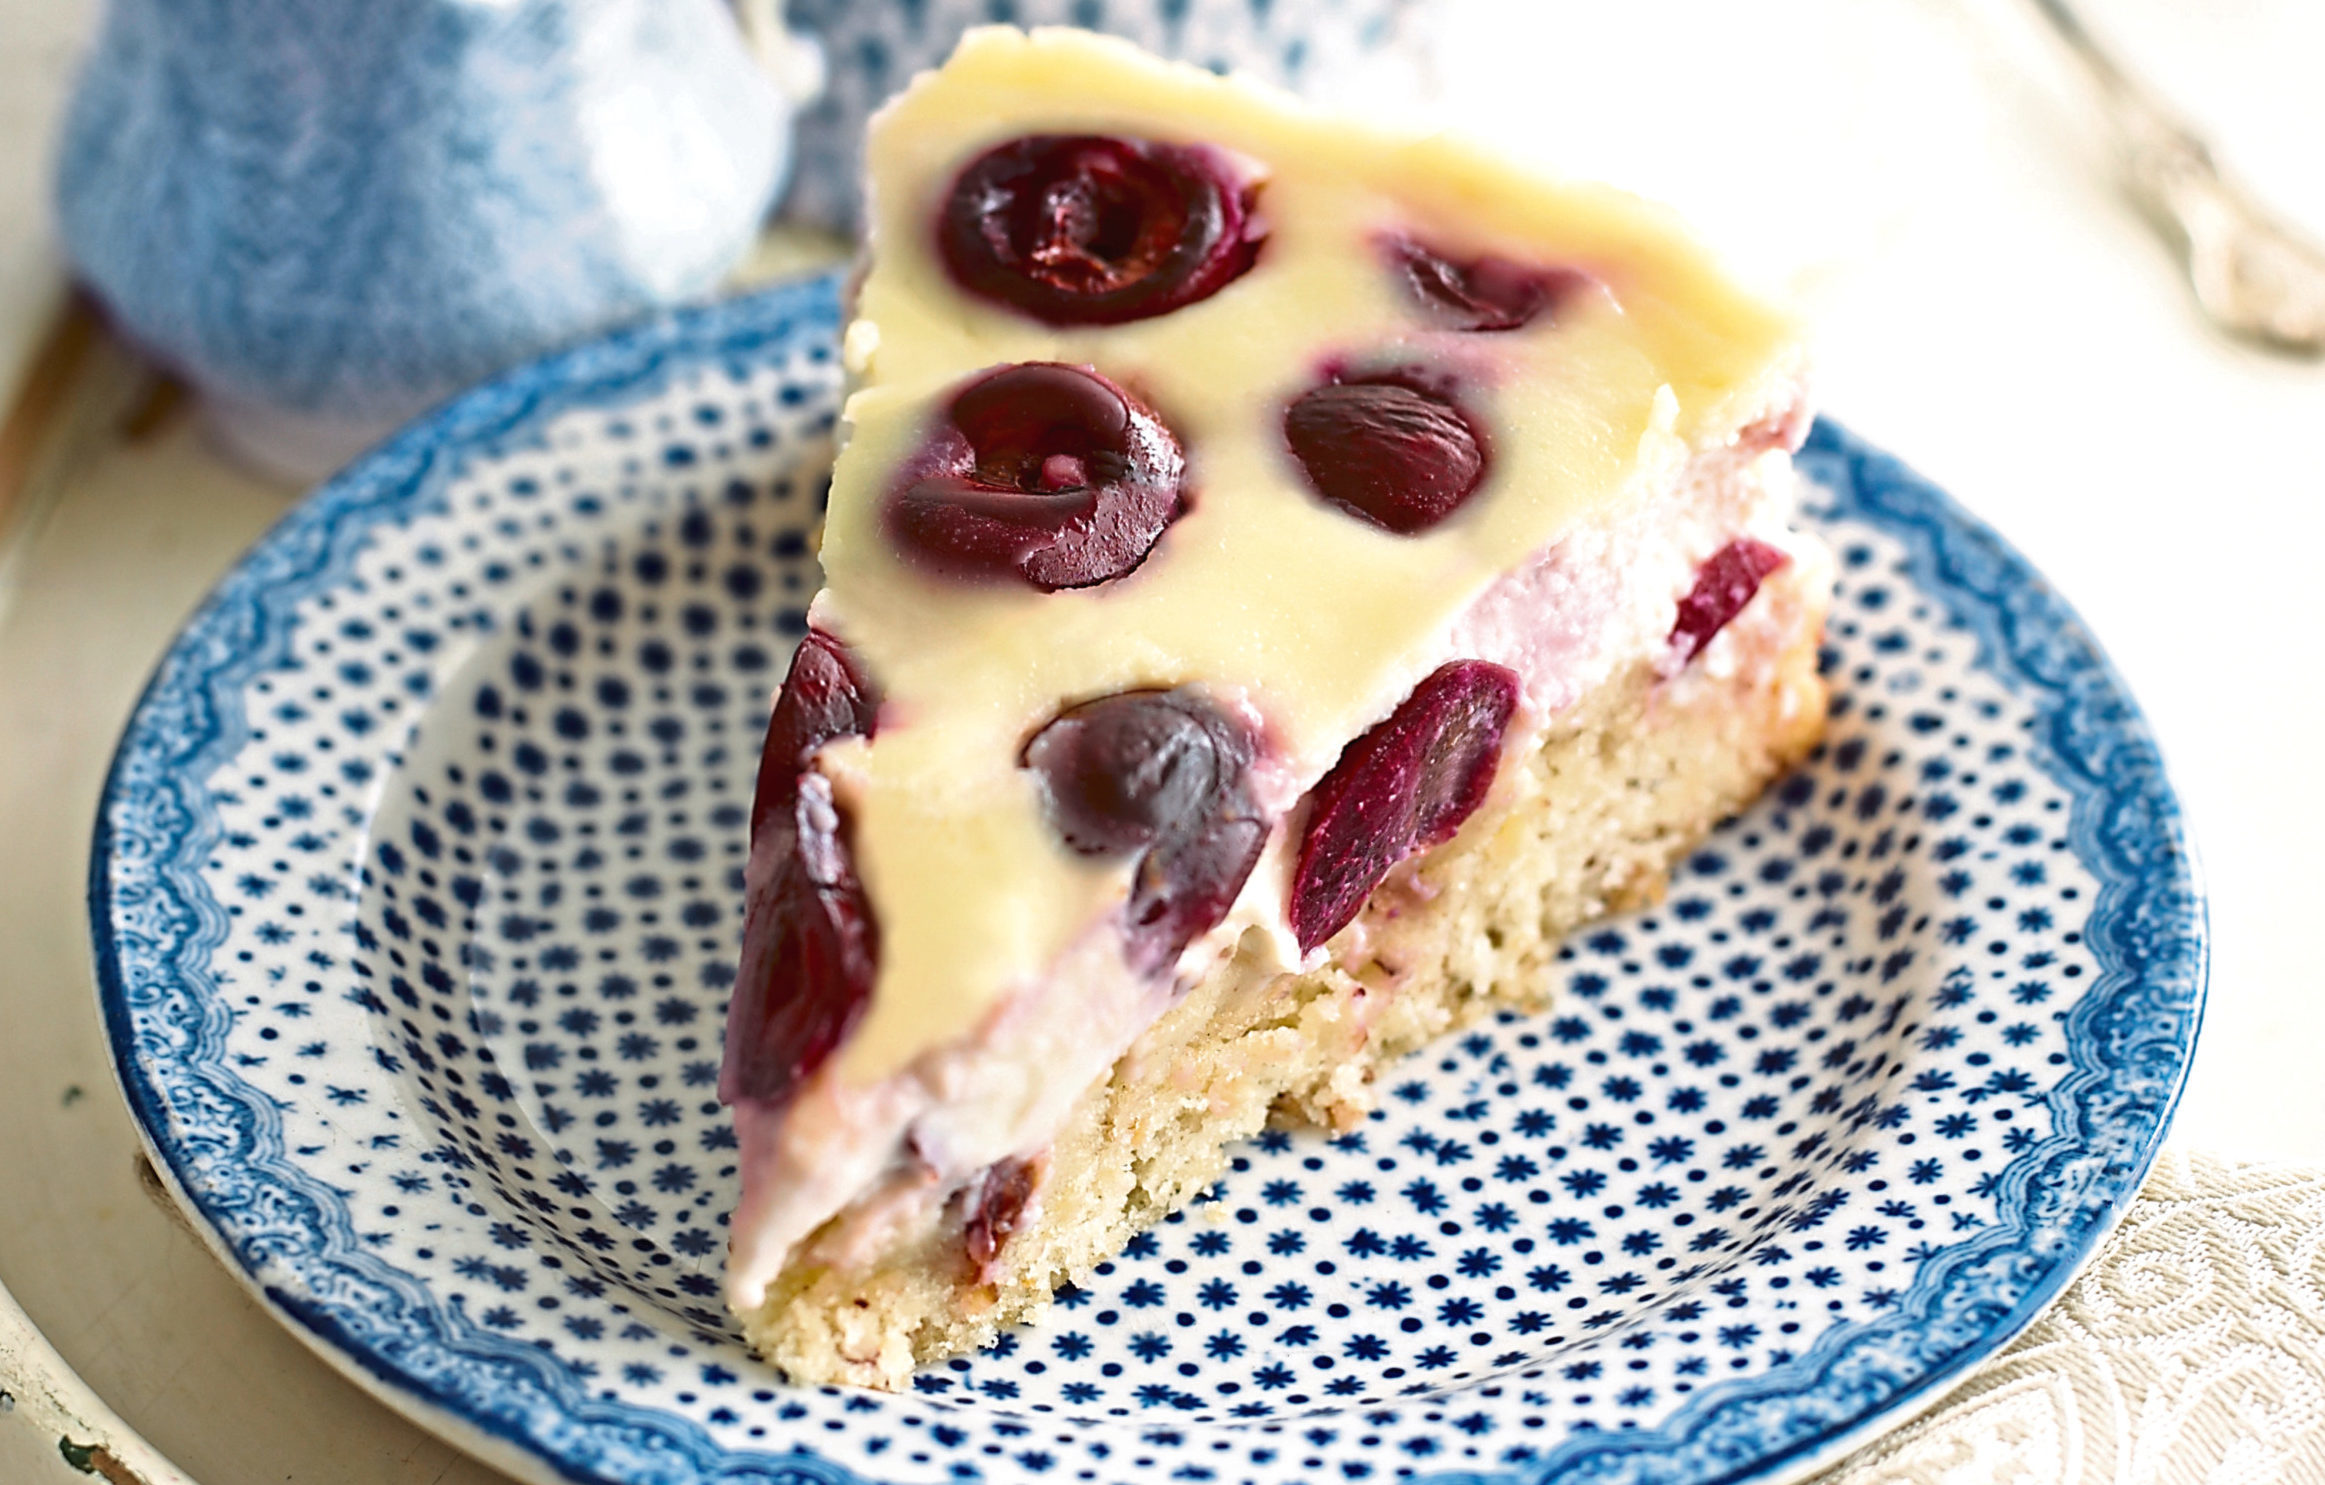 Cherry and ricotta cake